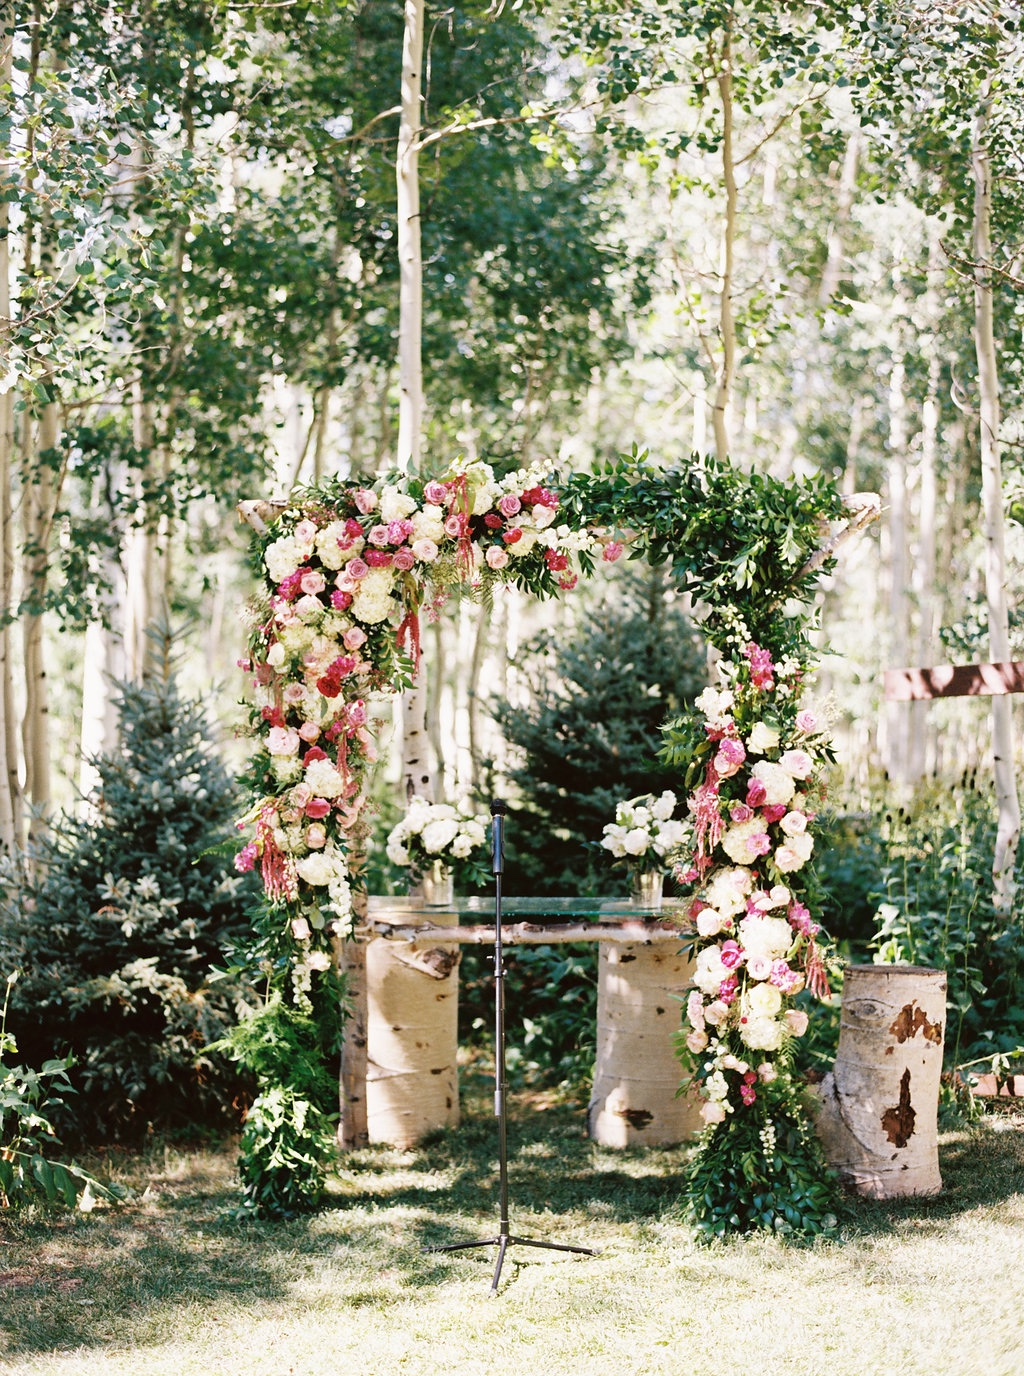 stunning ceremony arches, floral arch ideas, ceremony backdrop ideas